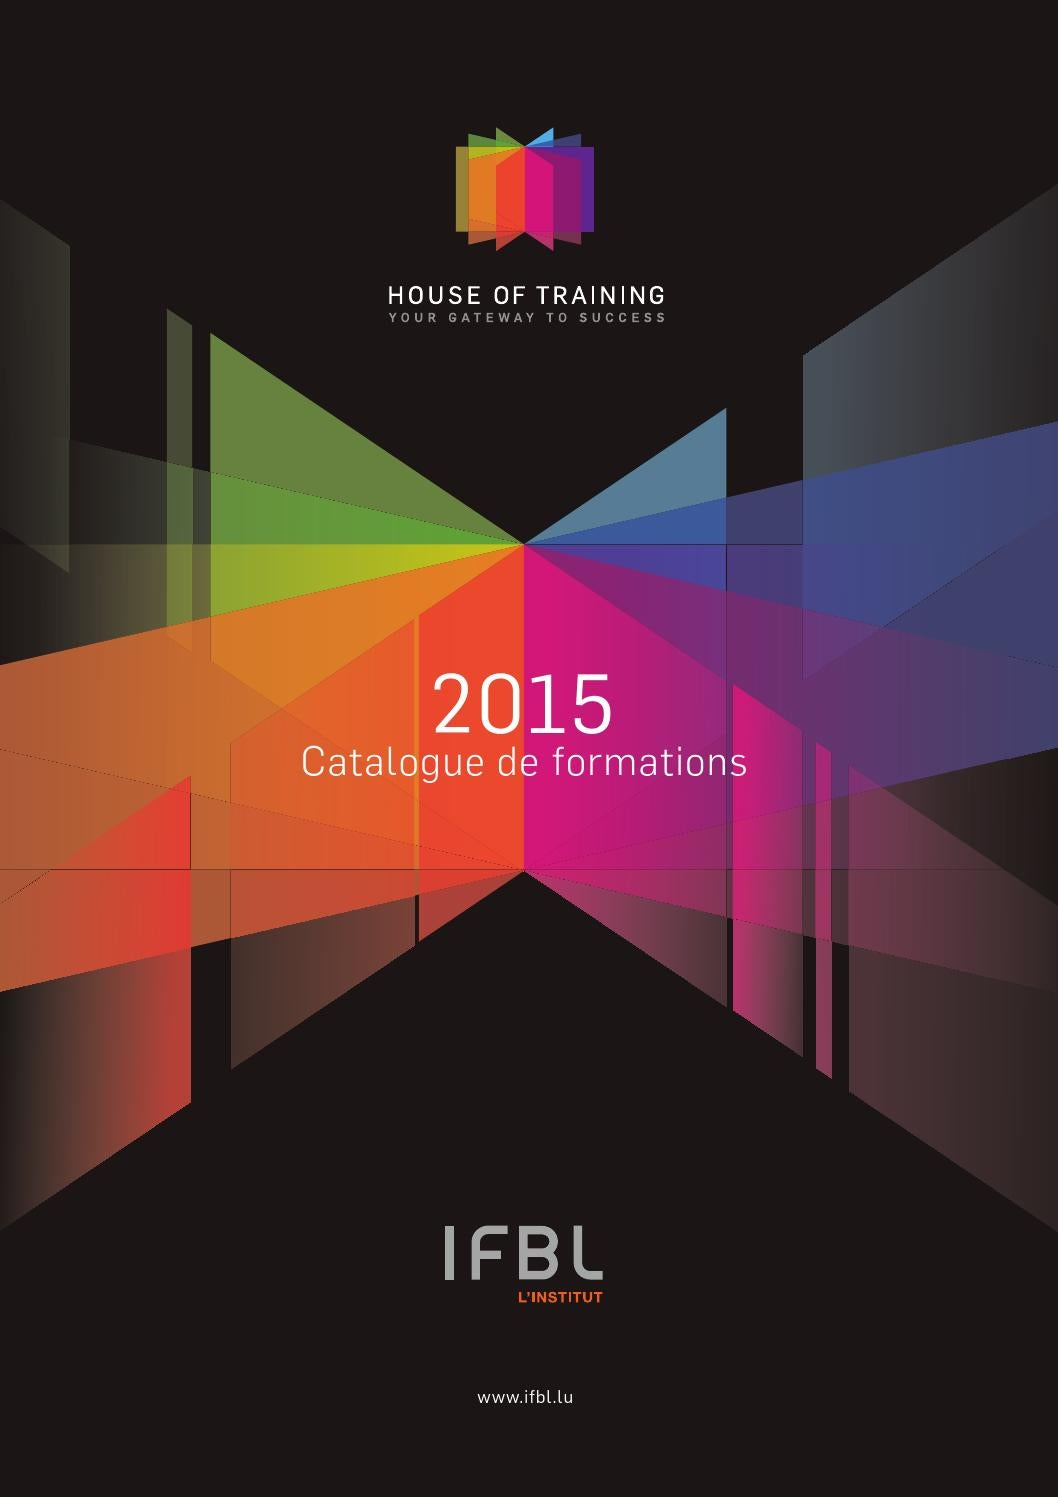 Formations 2015 by ifbl institut issuu for Chambre de commerce luxembourg formation